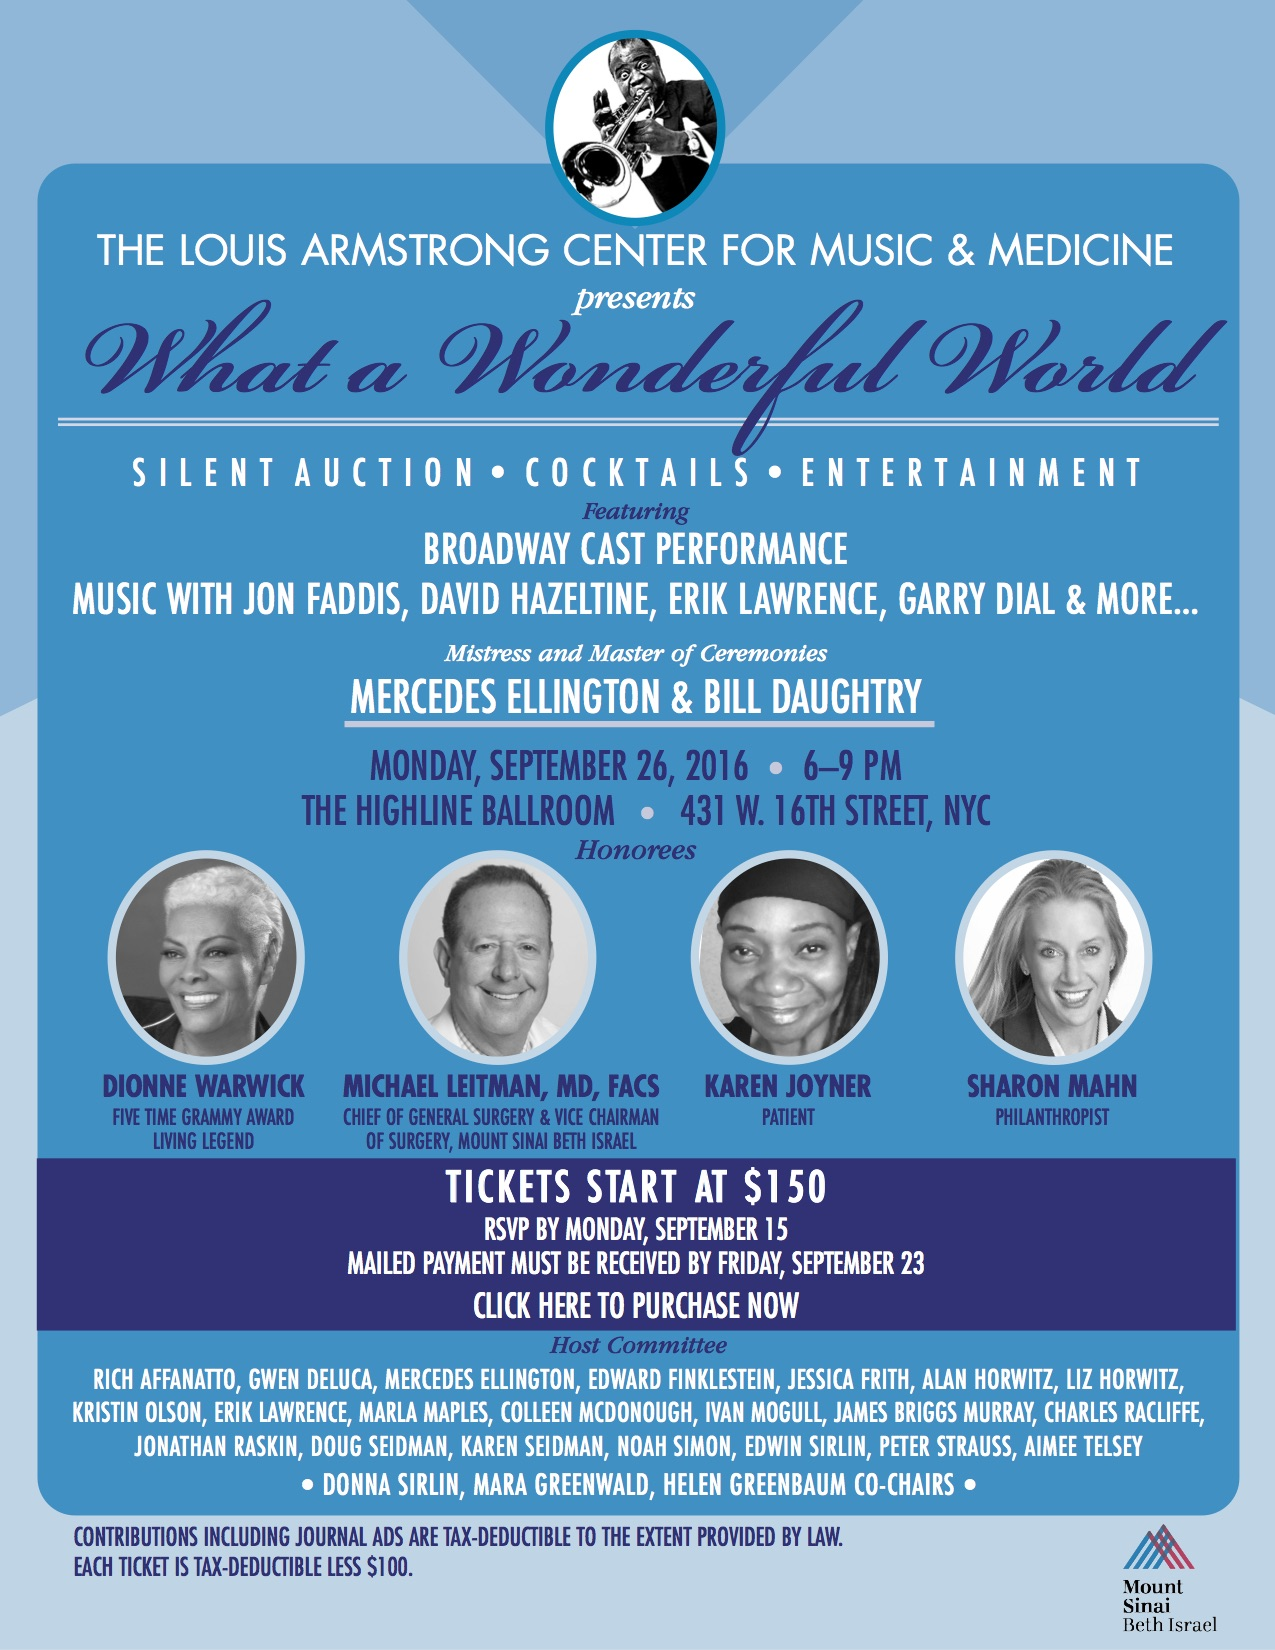 Louis Armstrong Center for Music and Medicine at Mount Sinai